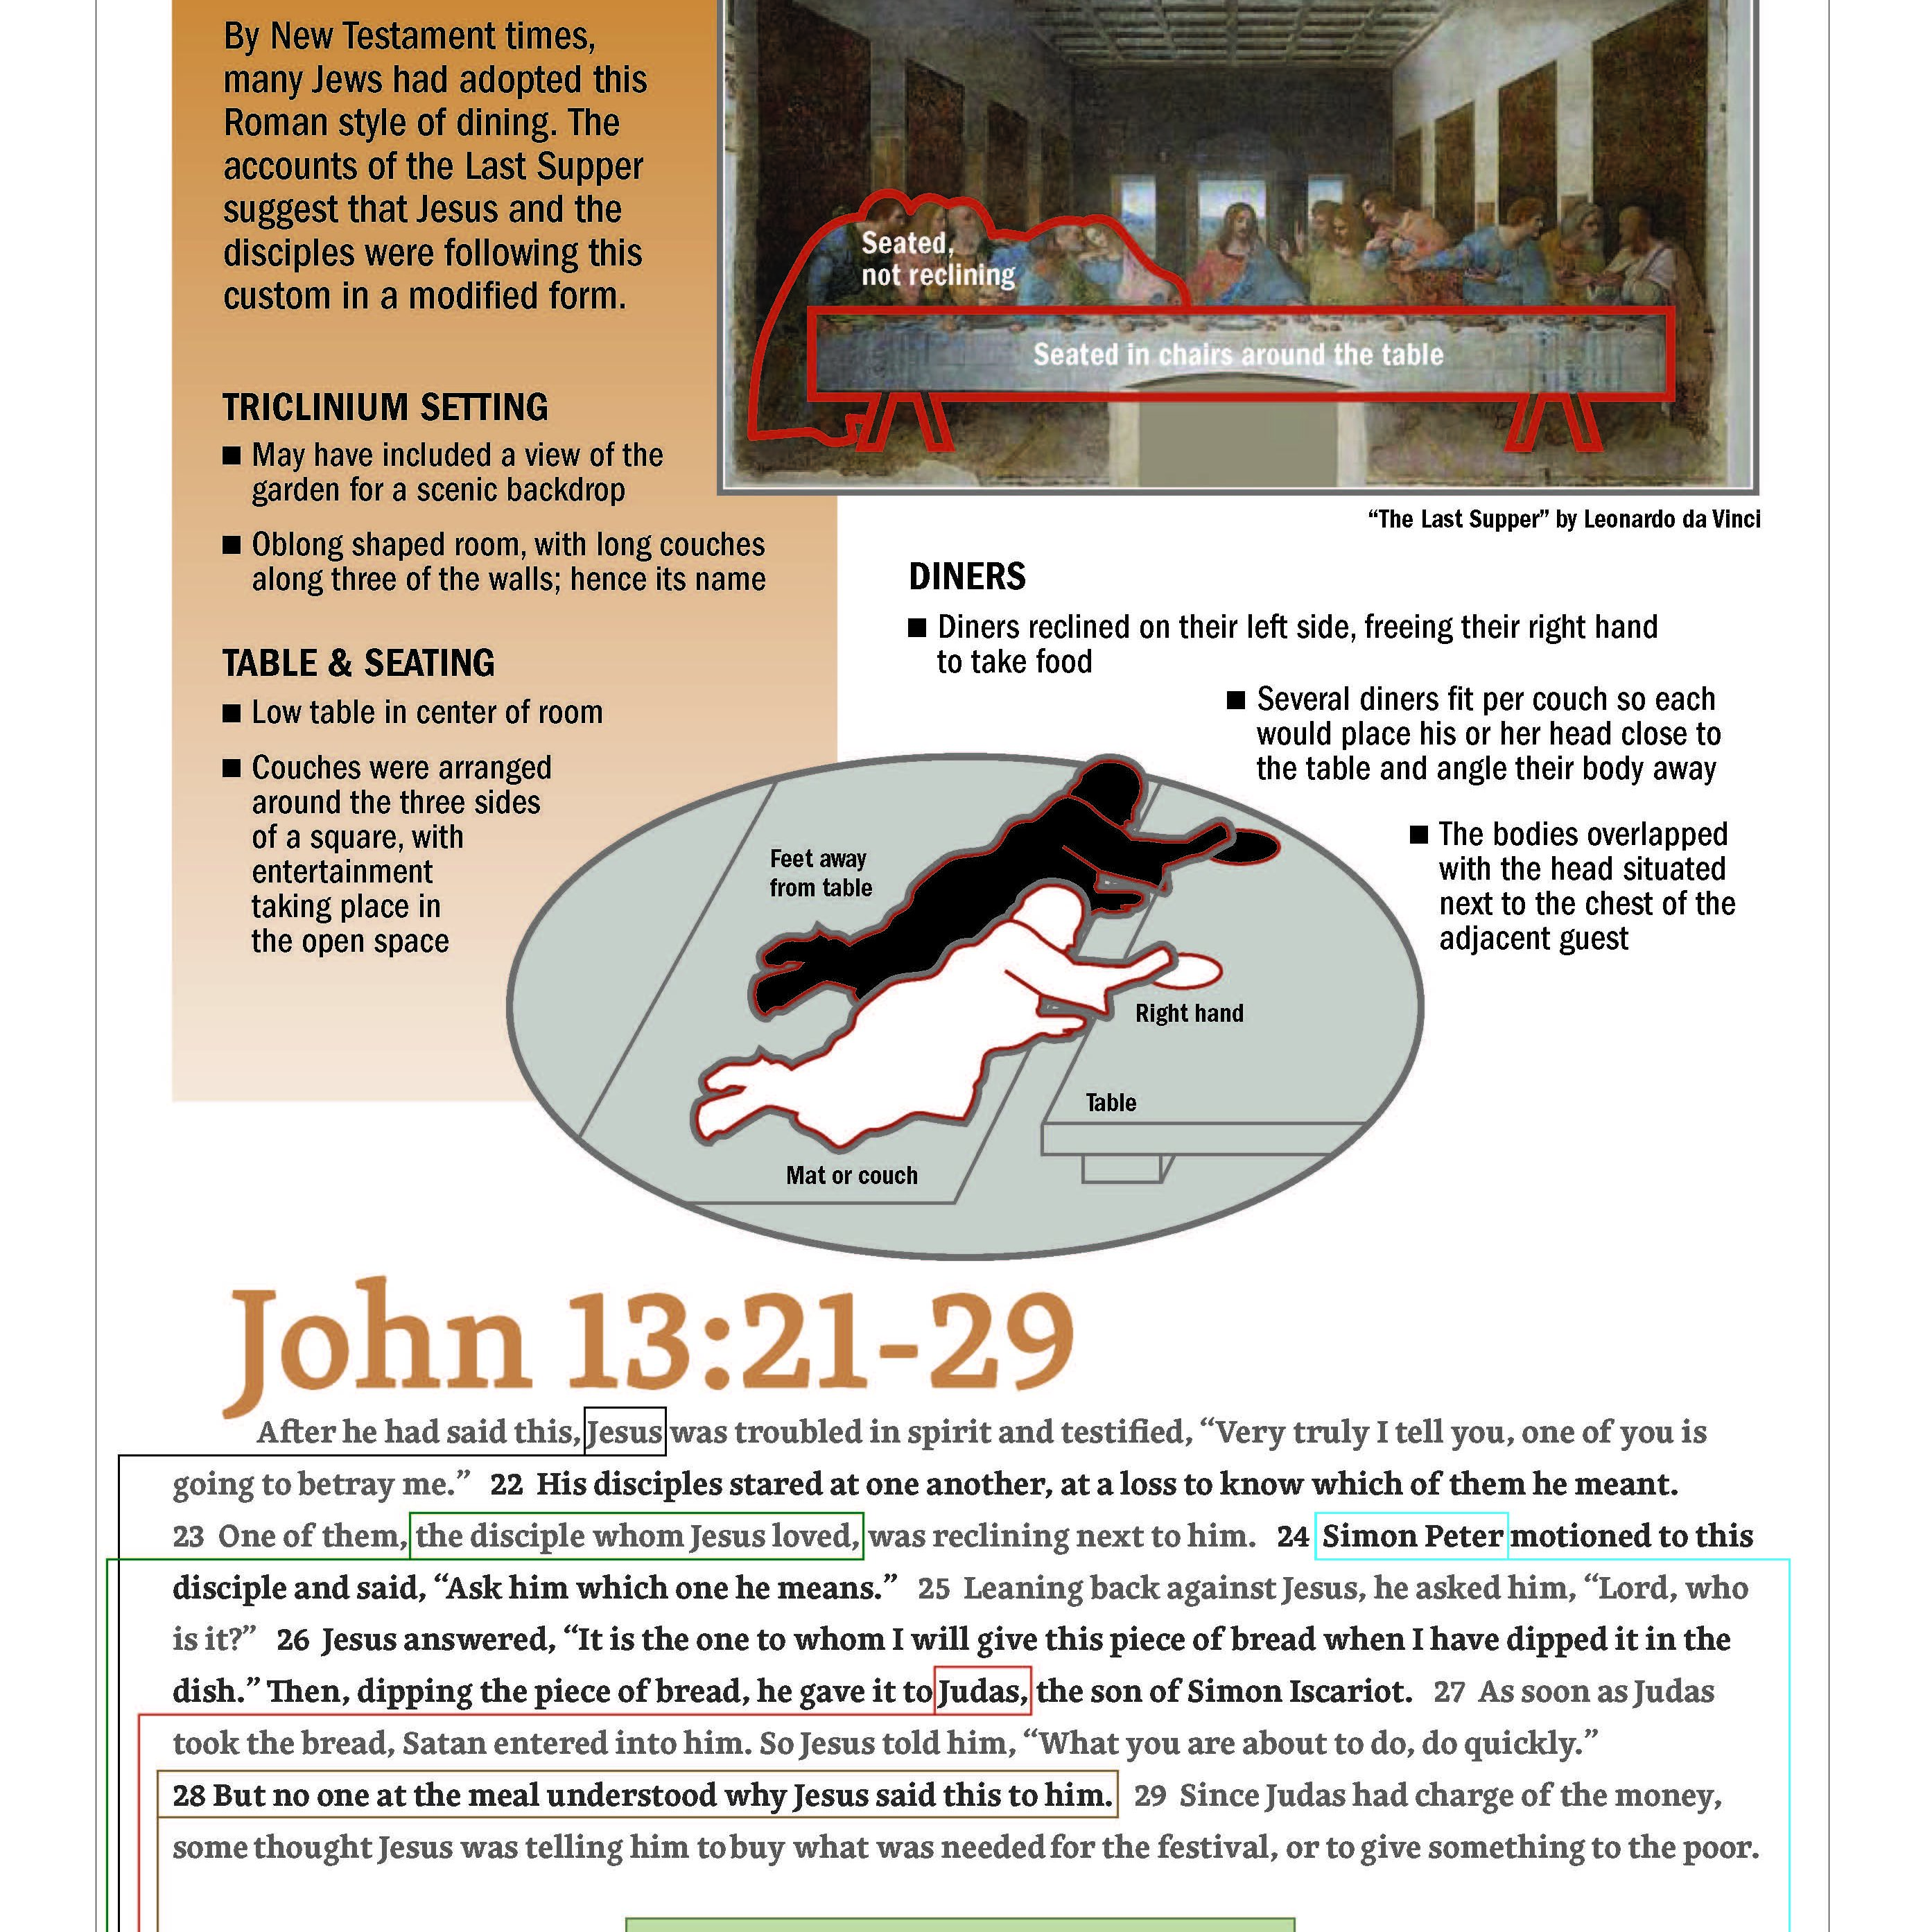 NIV-CBSB-Last-Supper-Infographic